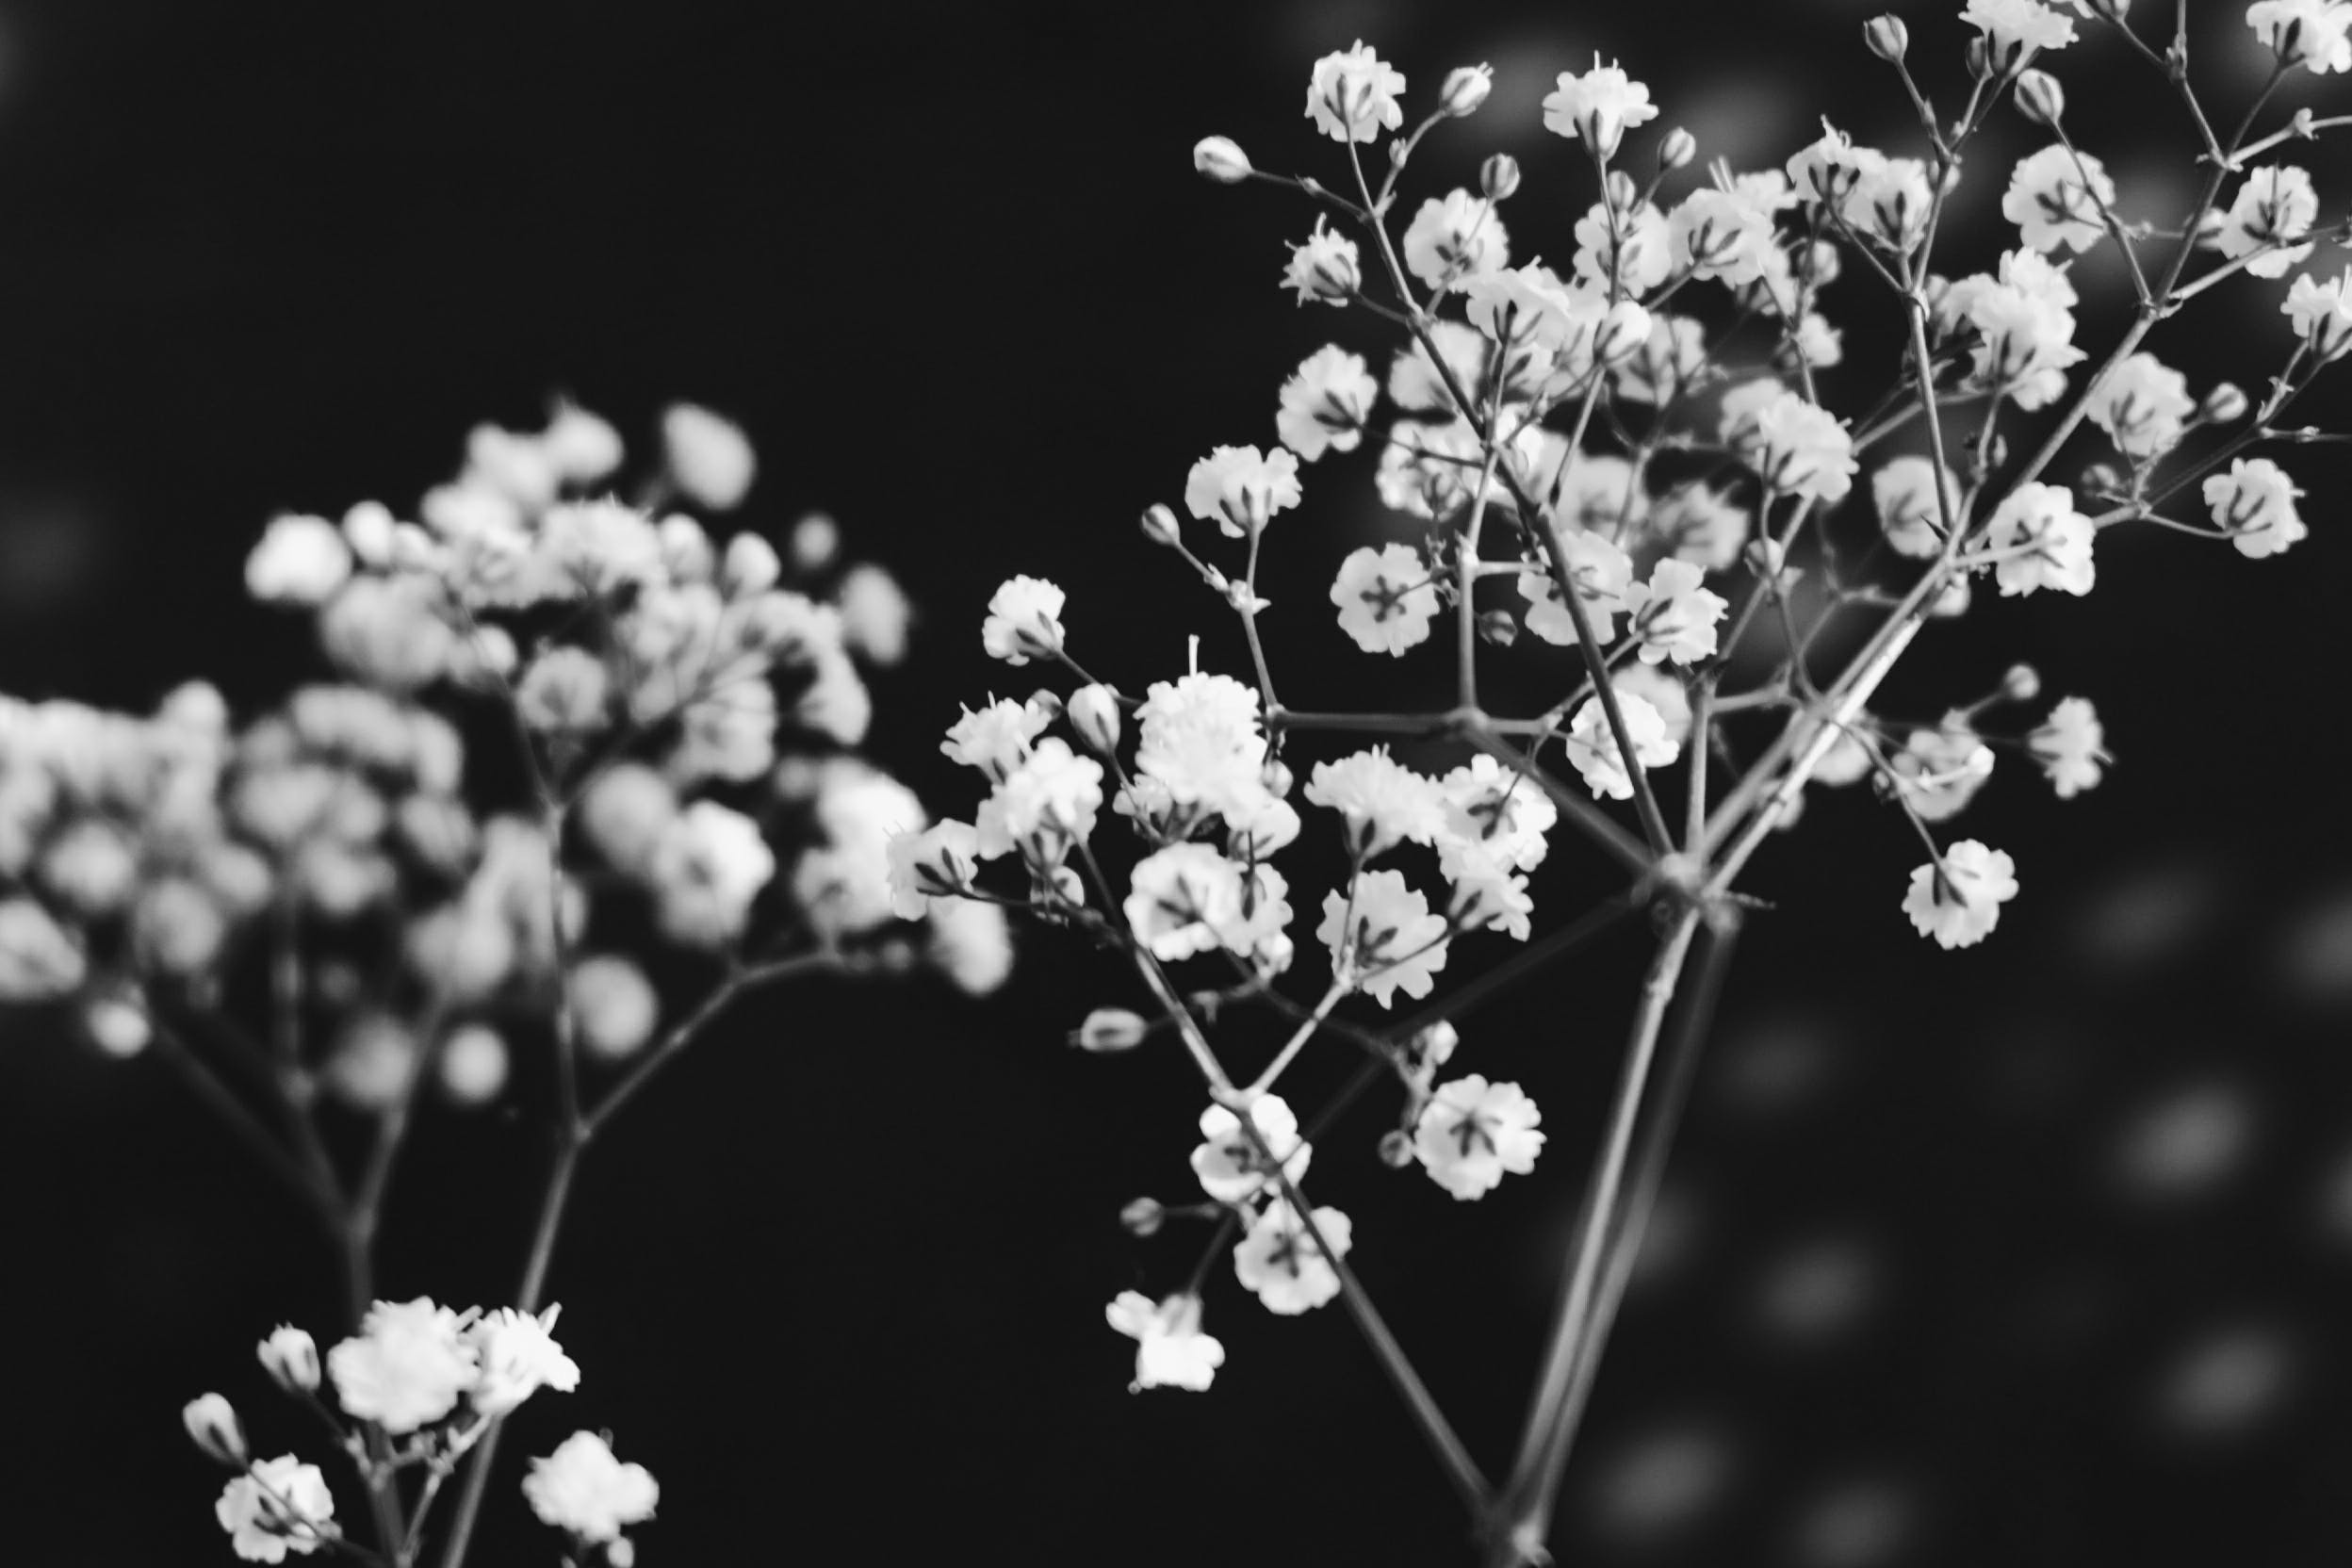 Grayscale Photography of Flowers in Bloom